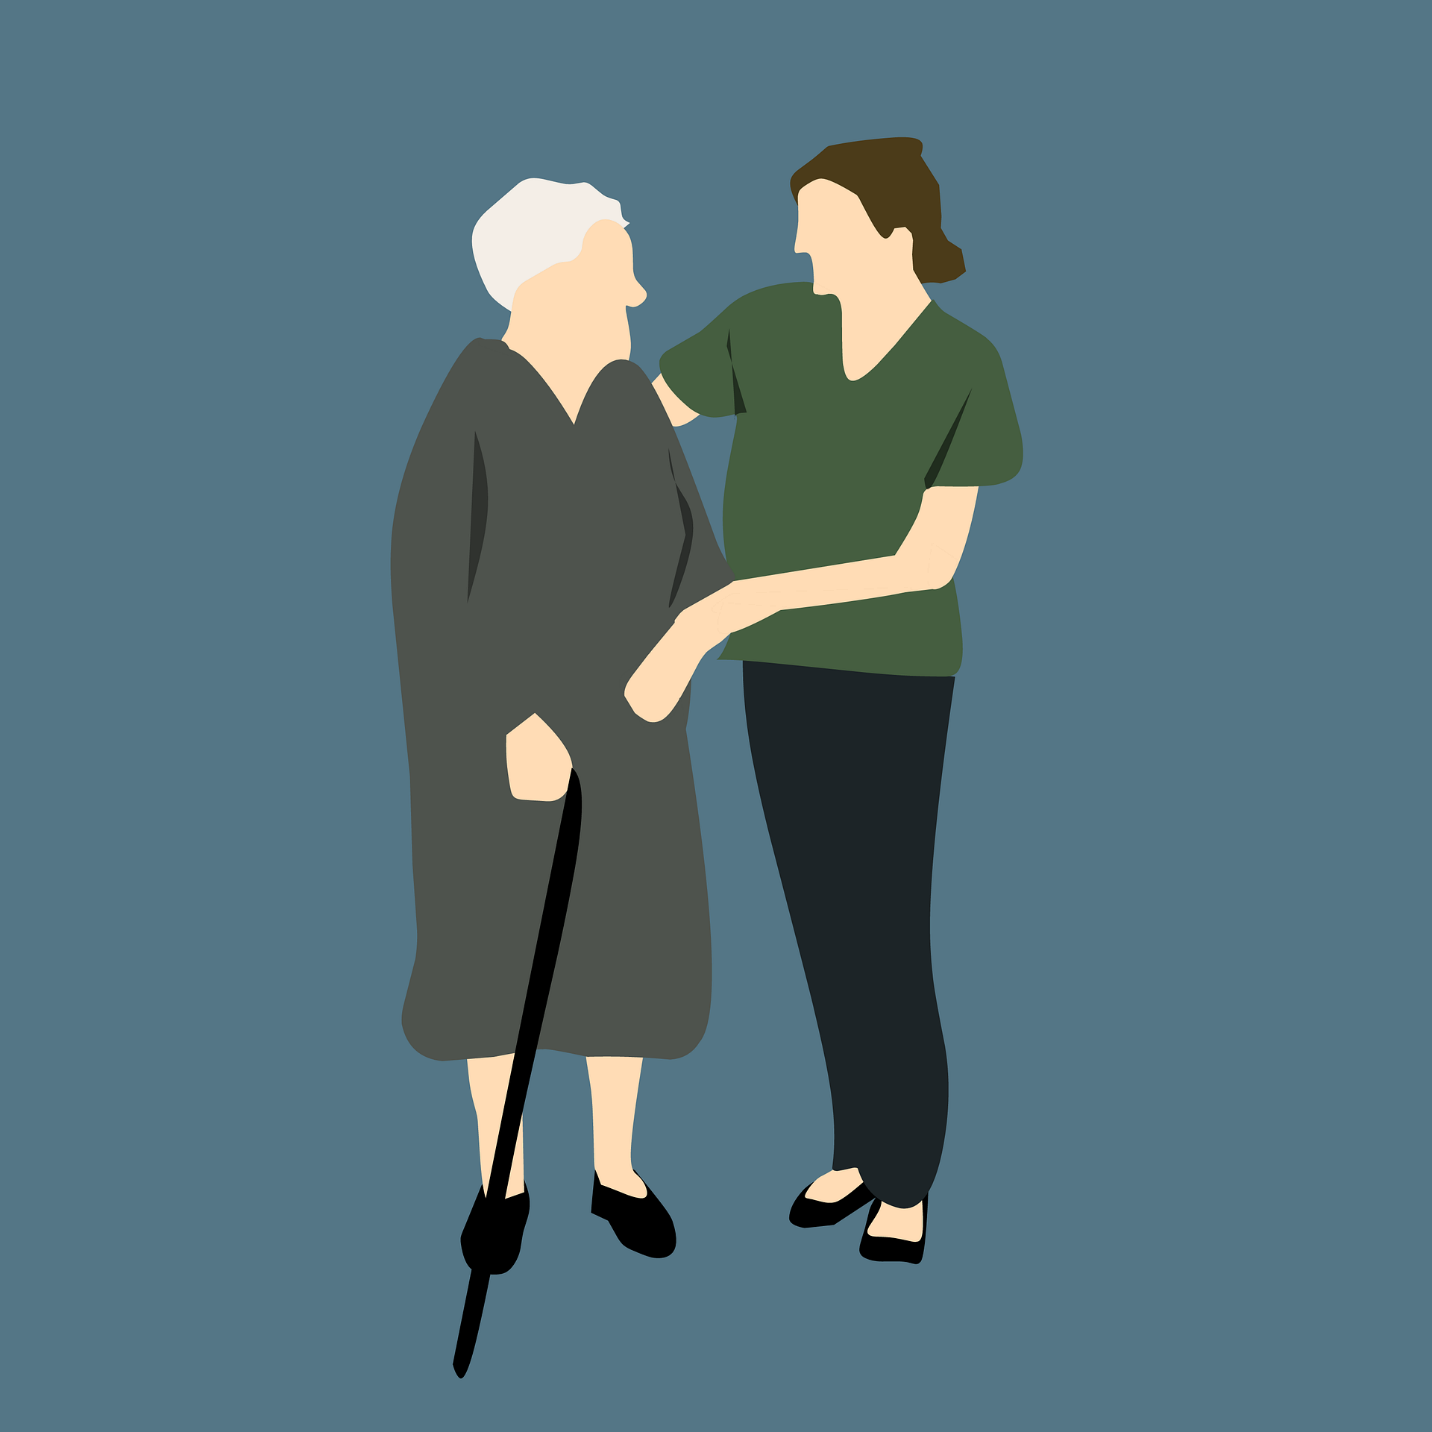 Providing Senior Care From Afar